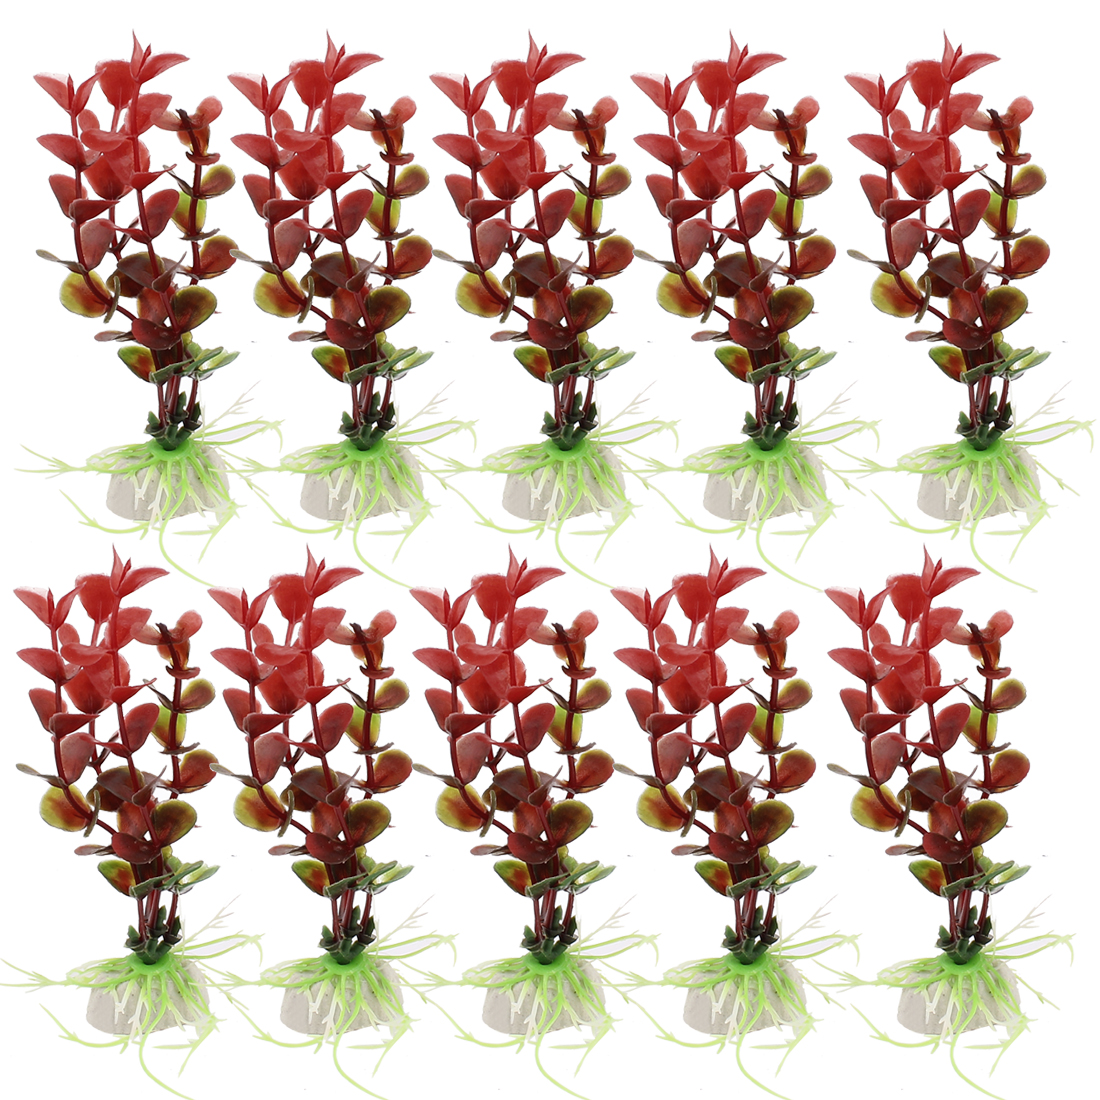 Ceramic Base Plastic Sea Weeds Aquarium Plant Grass Decoration 10PCS